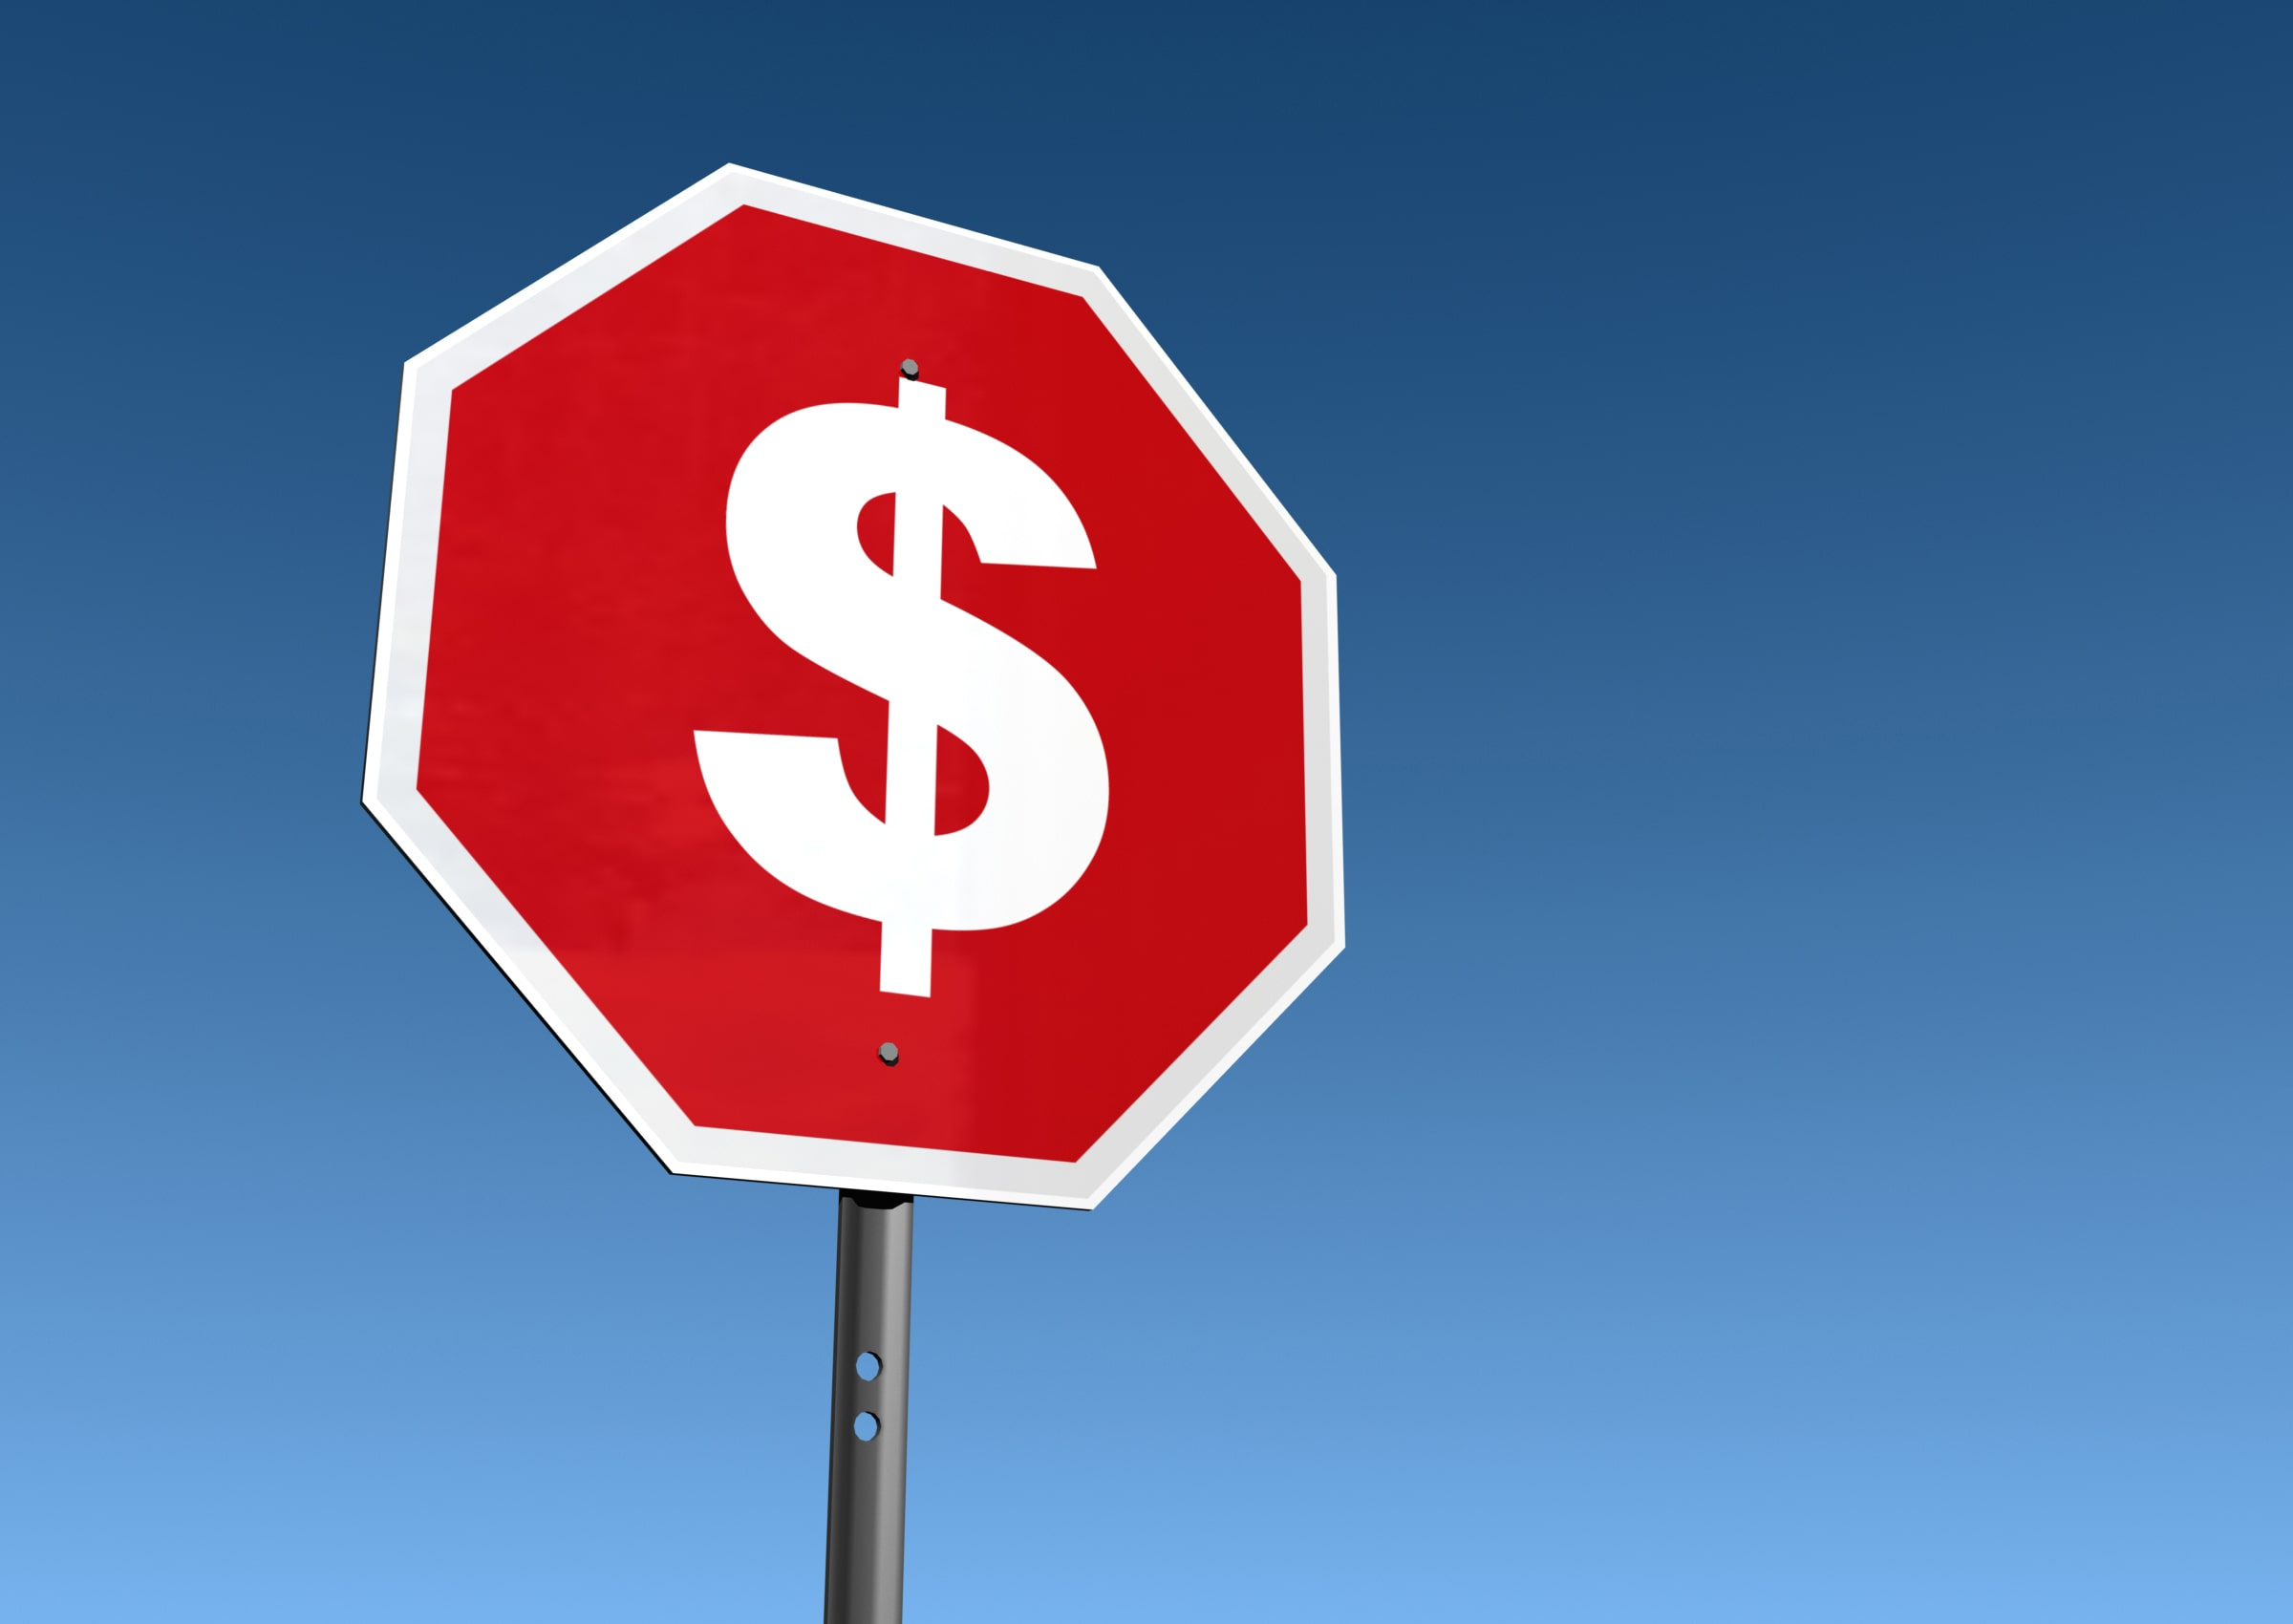 Stop sign simbolizing a buy stop order for the market